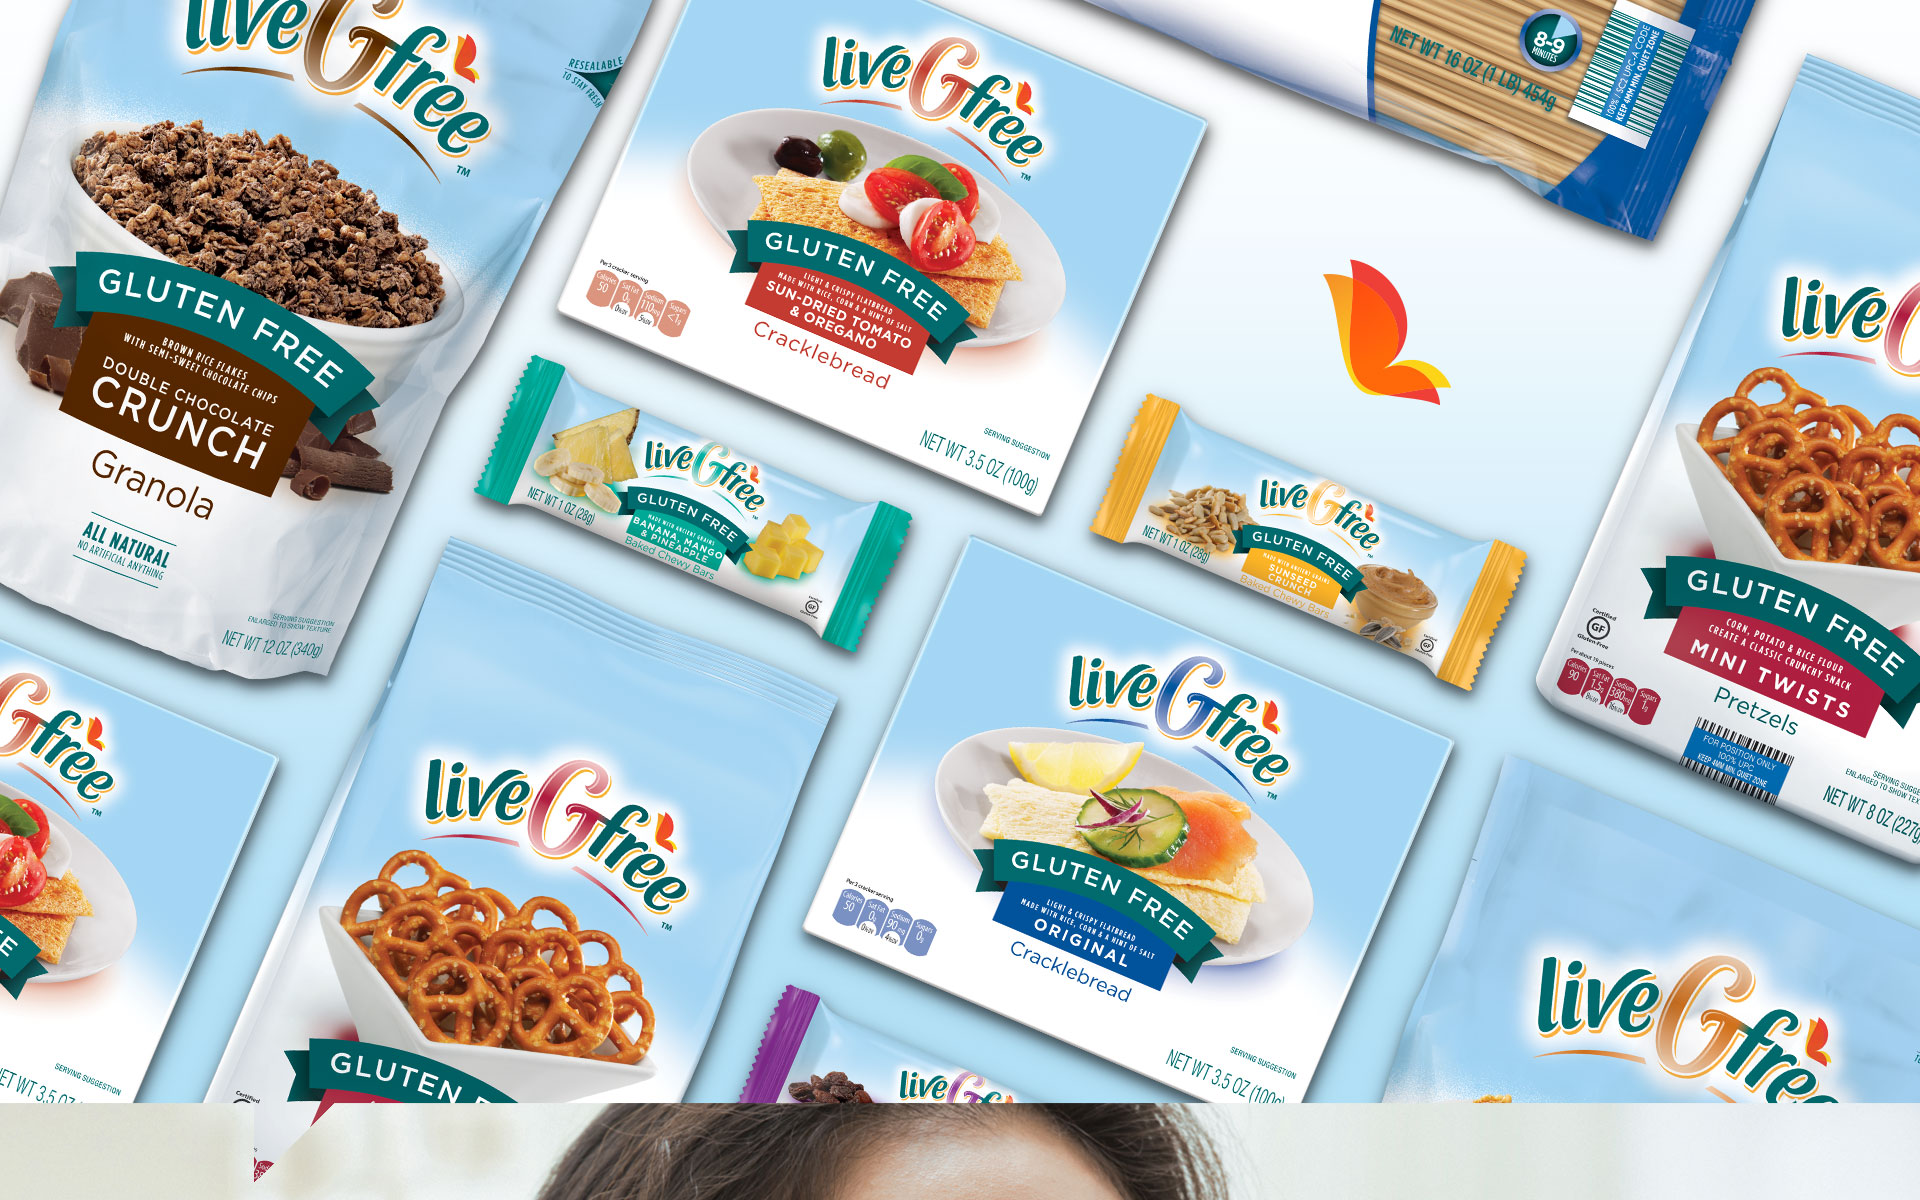 Aldi LiveGfree - Packaging Design range